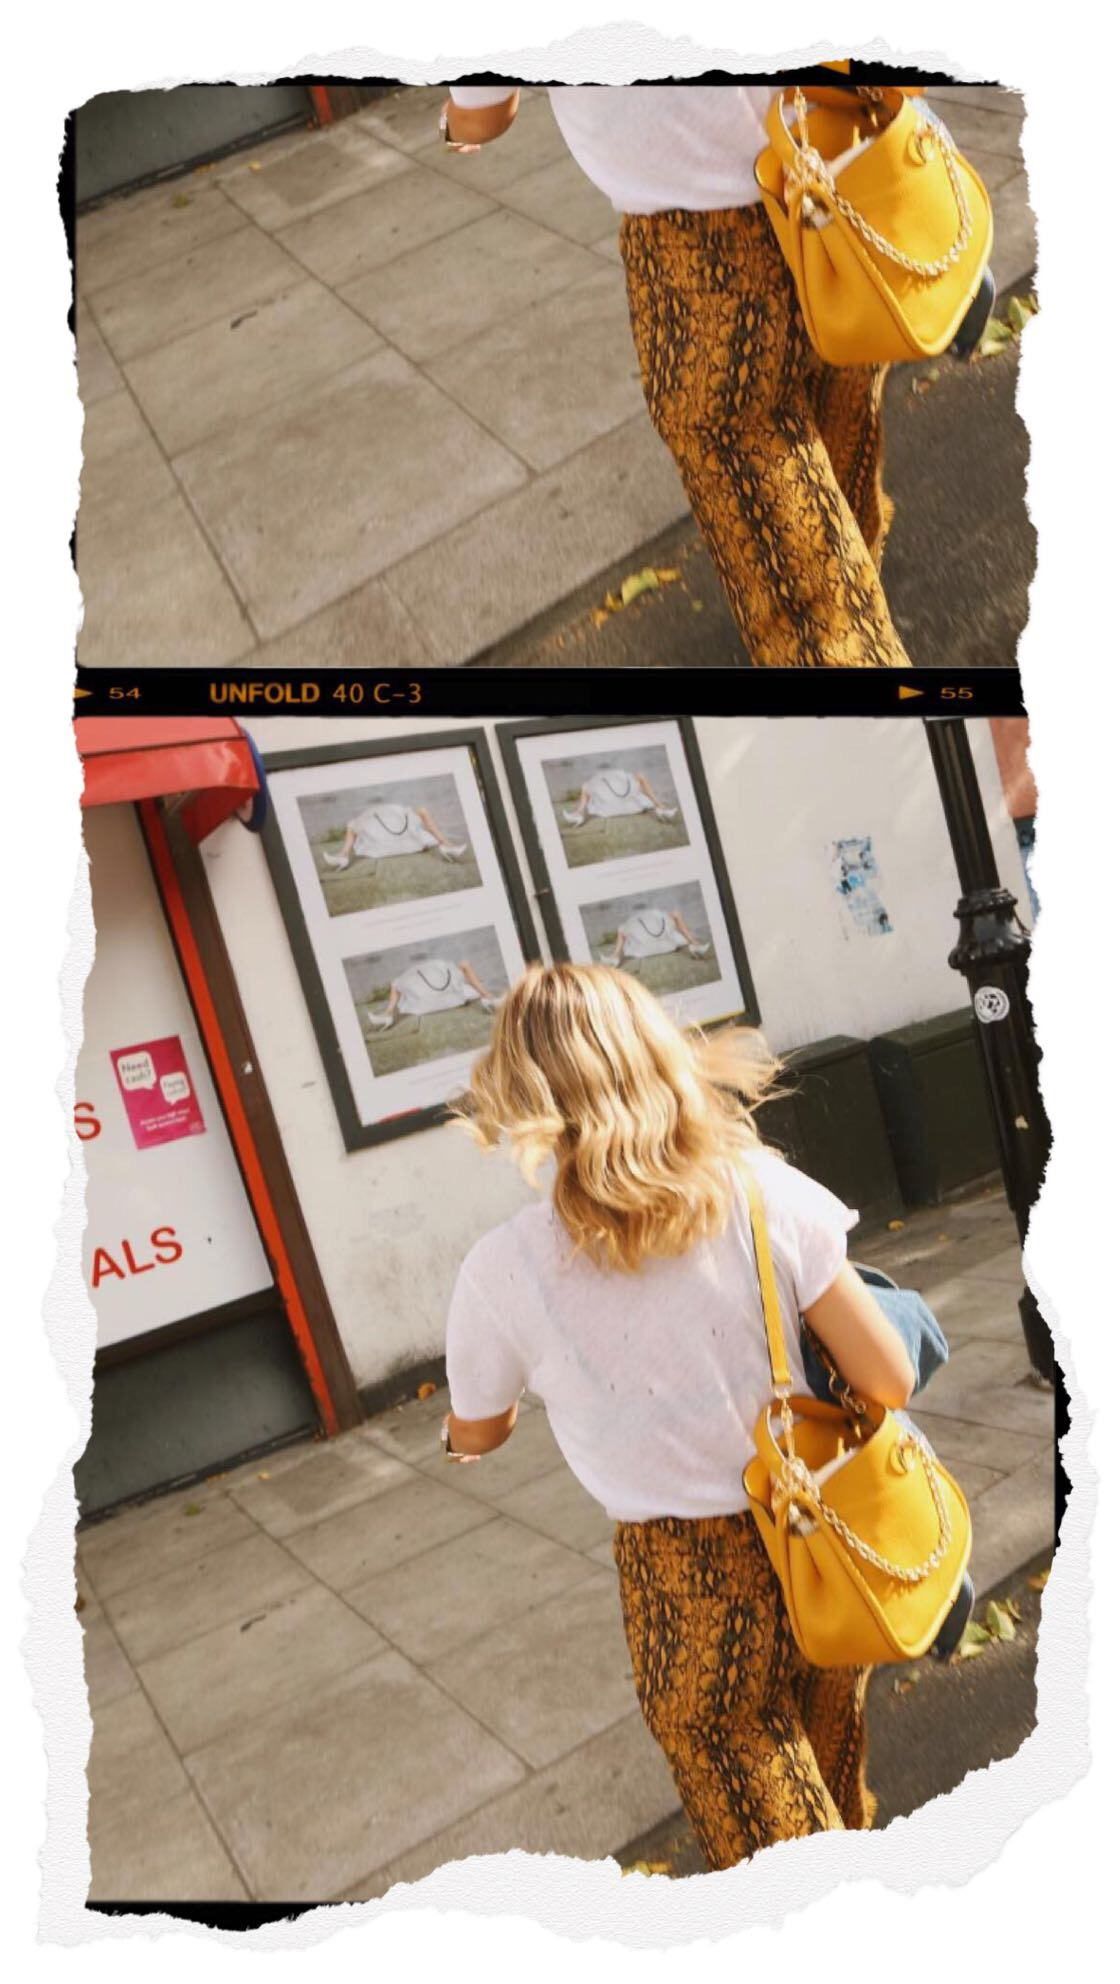 NFW Street Style - Lucy Williams Wearing Snake Print Trousers